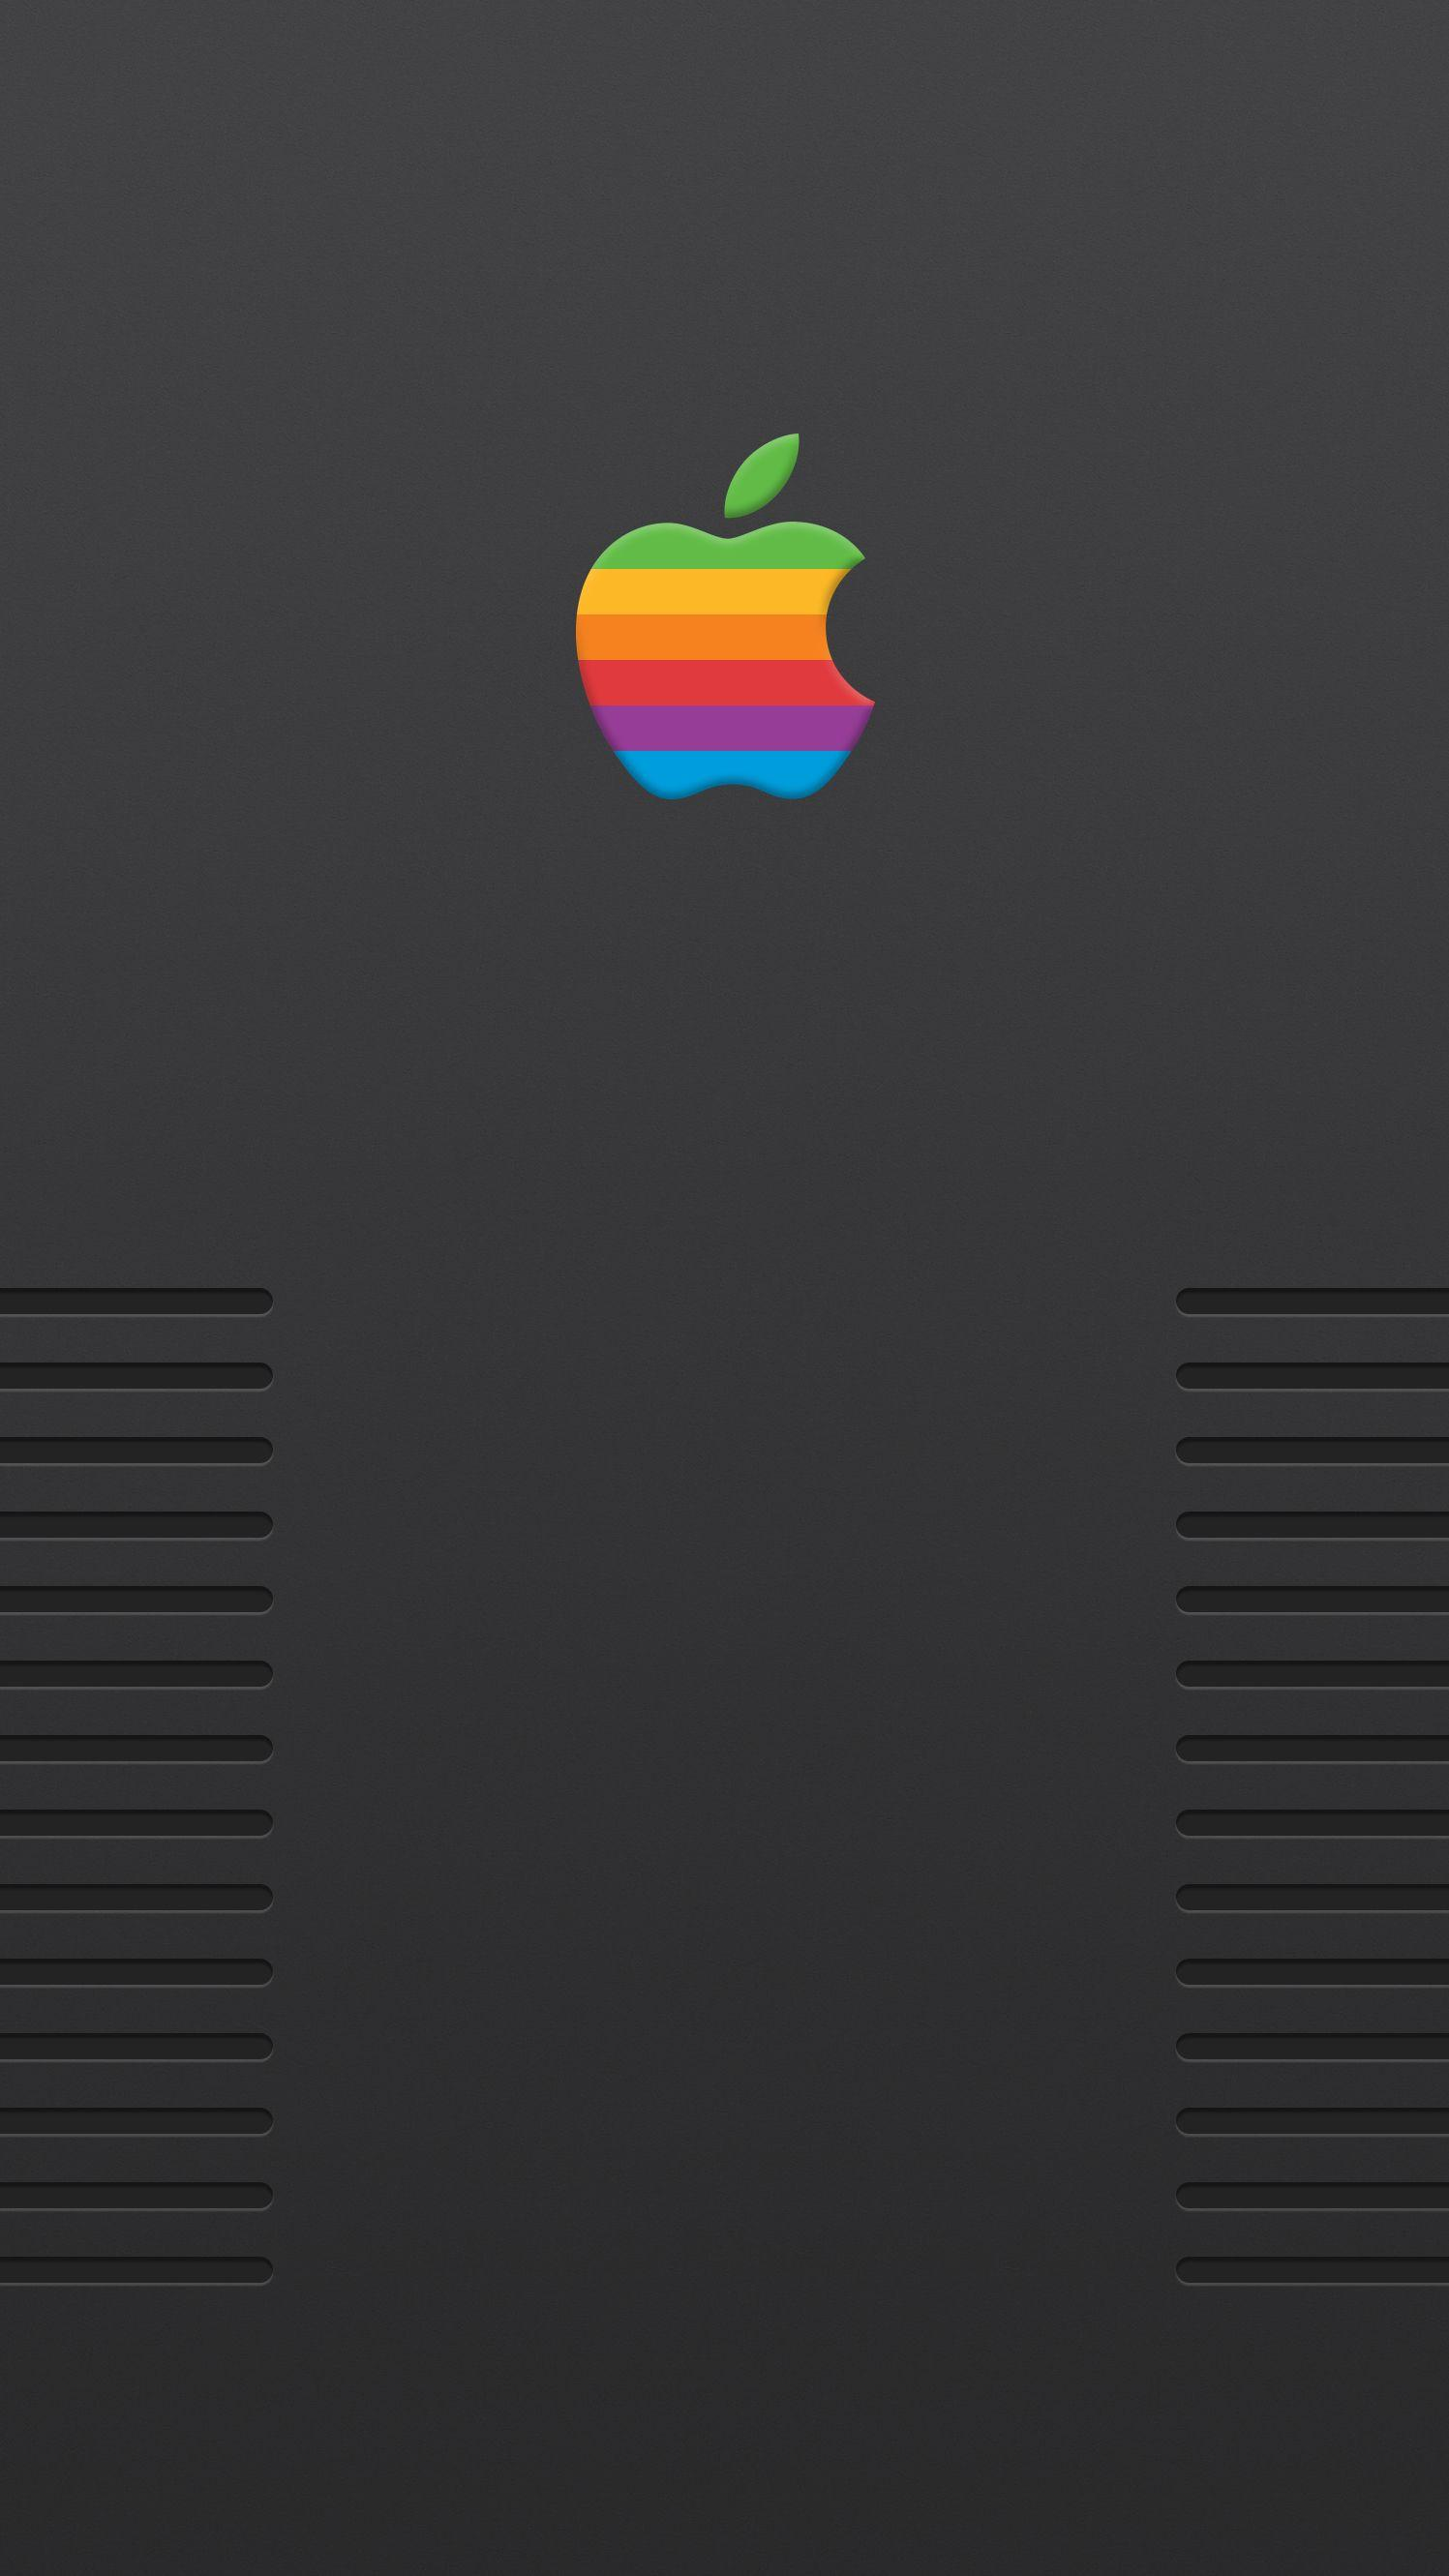 Retro Apple Iphone 11 Wallpapers Wallpaper Cave